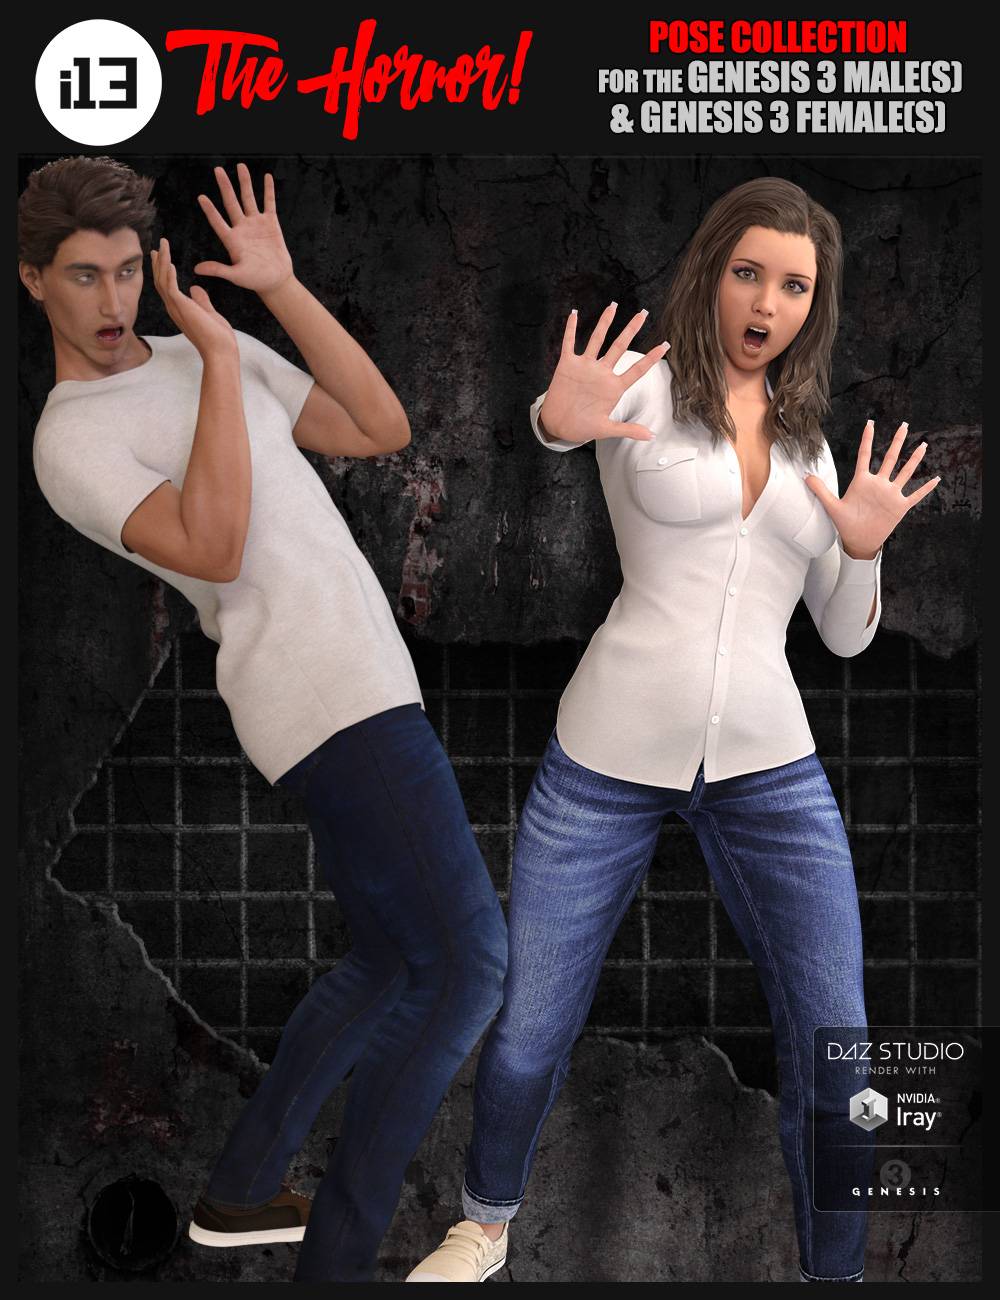 i13 The Horror! Pose Collection for the Genesis 3 Male(s) and Genesis 3 Female(s) by: ironman13, 3D Models by Daz 3D